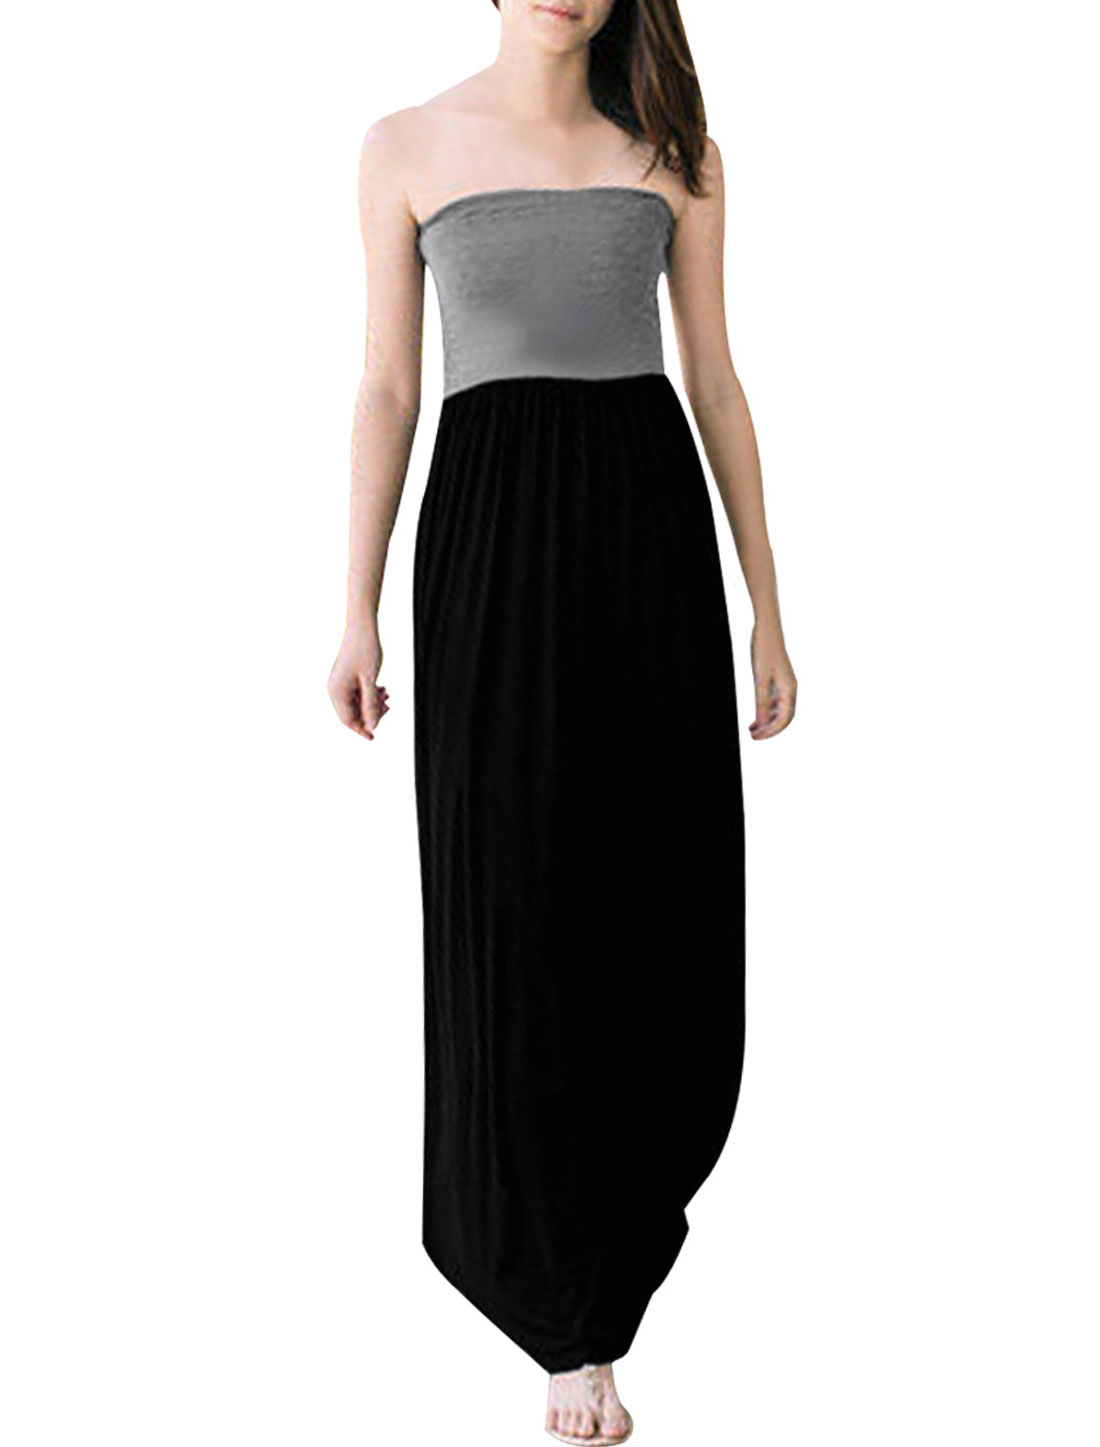 Ladies Black Gray Ruched Detail Casual Strapless Long Dress XS